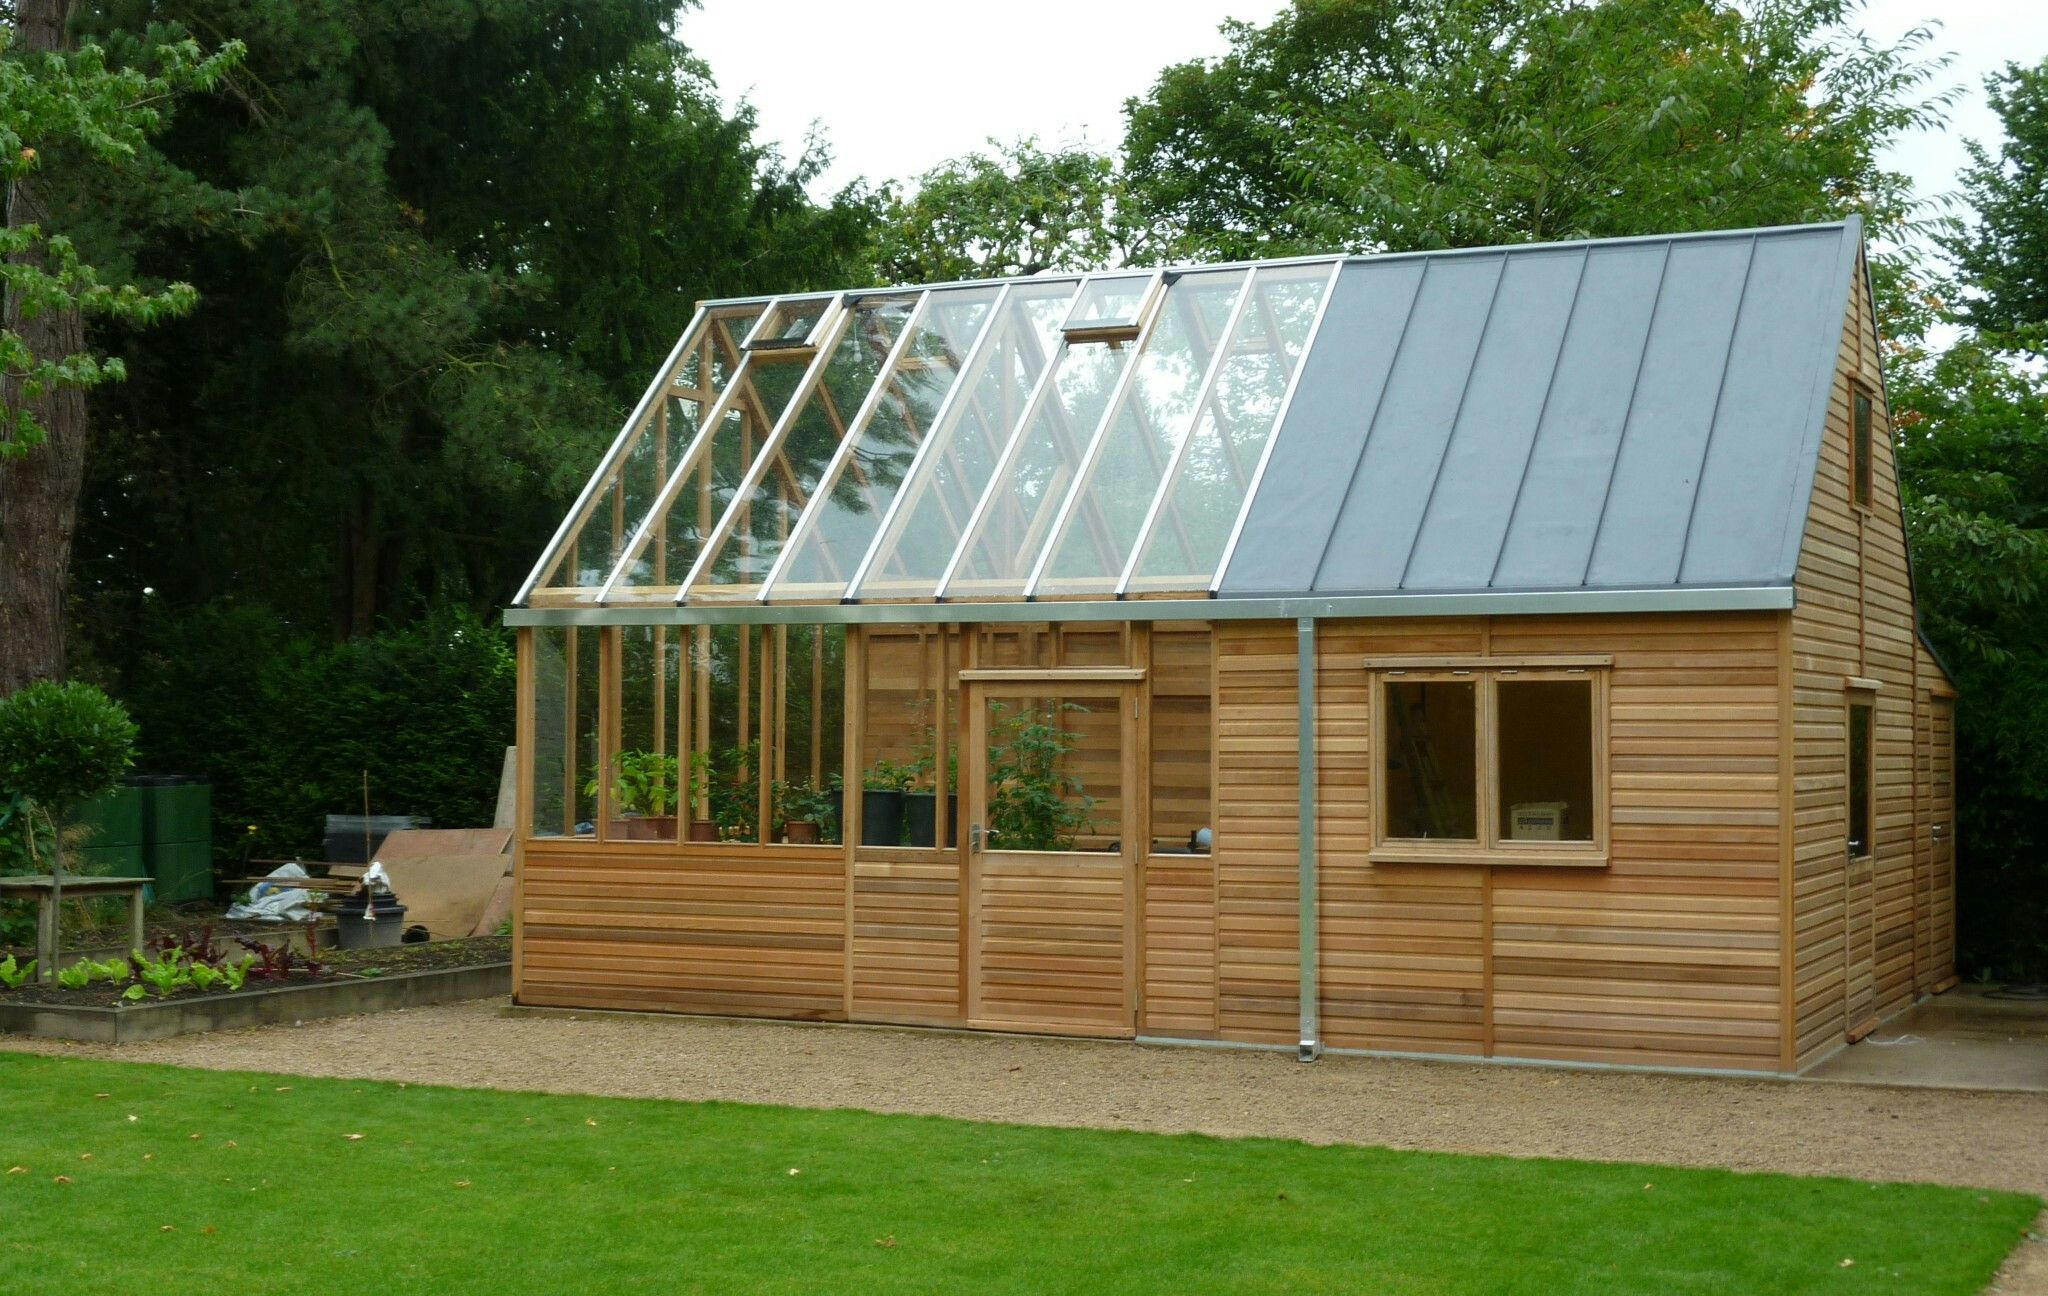 Pin by Lisa Del Gallo on Garden: Sheds/Greenhouses/Misc. Structures ...